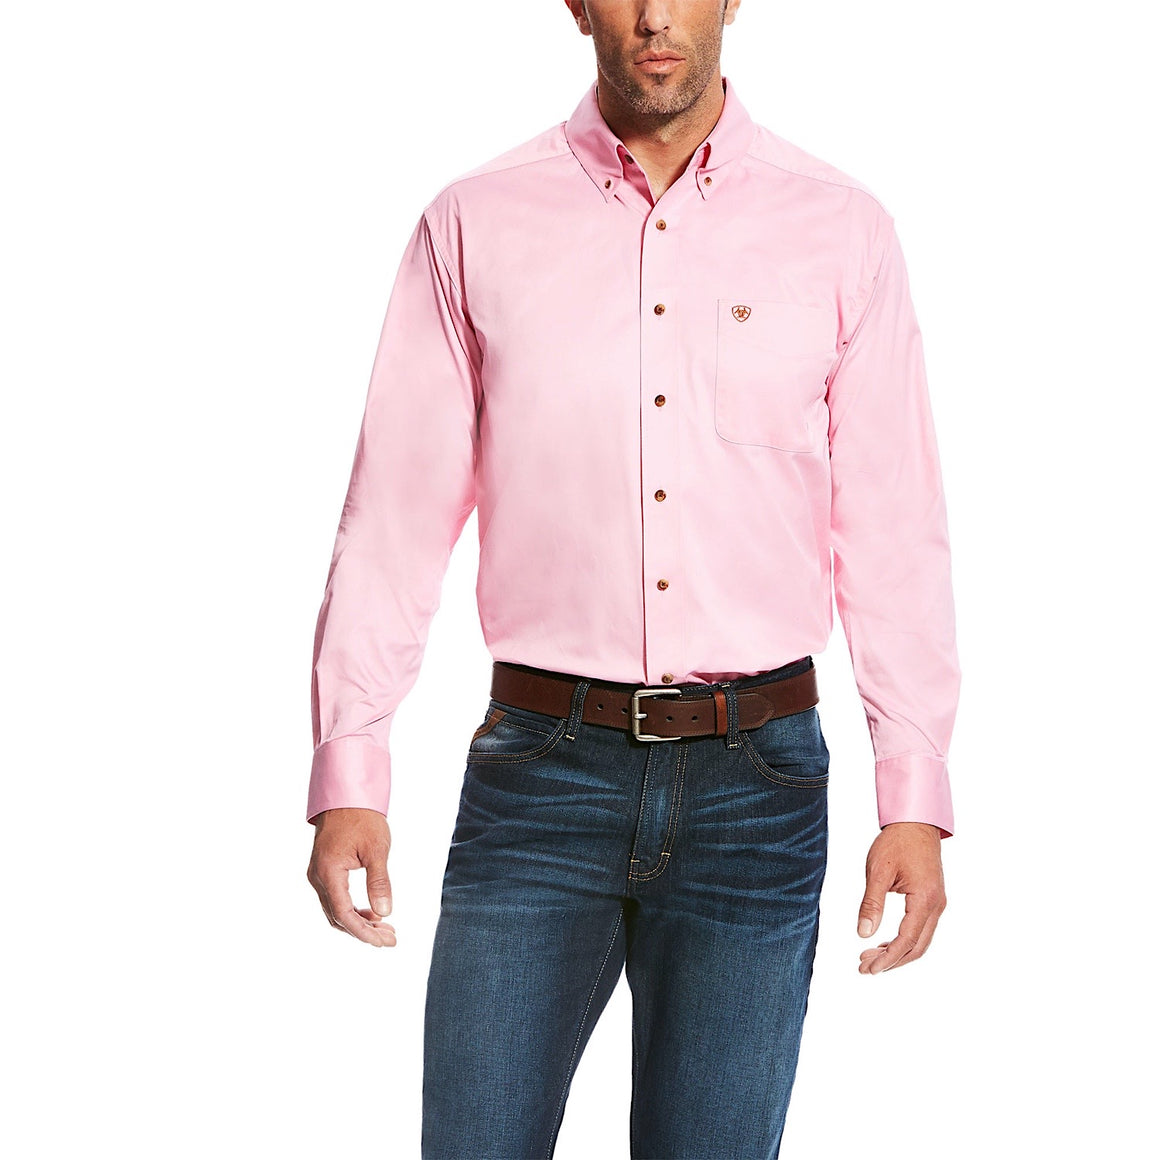 Ariat Mens Solid Twill Classic Fit Shirt Prism Pink